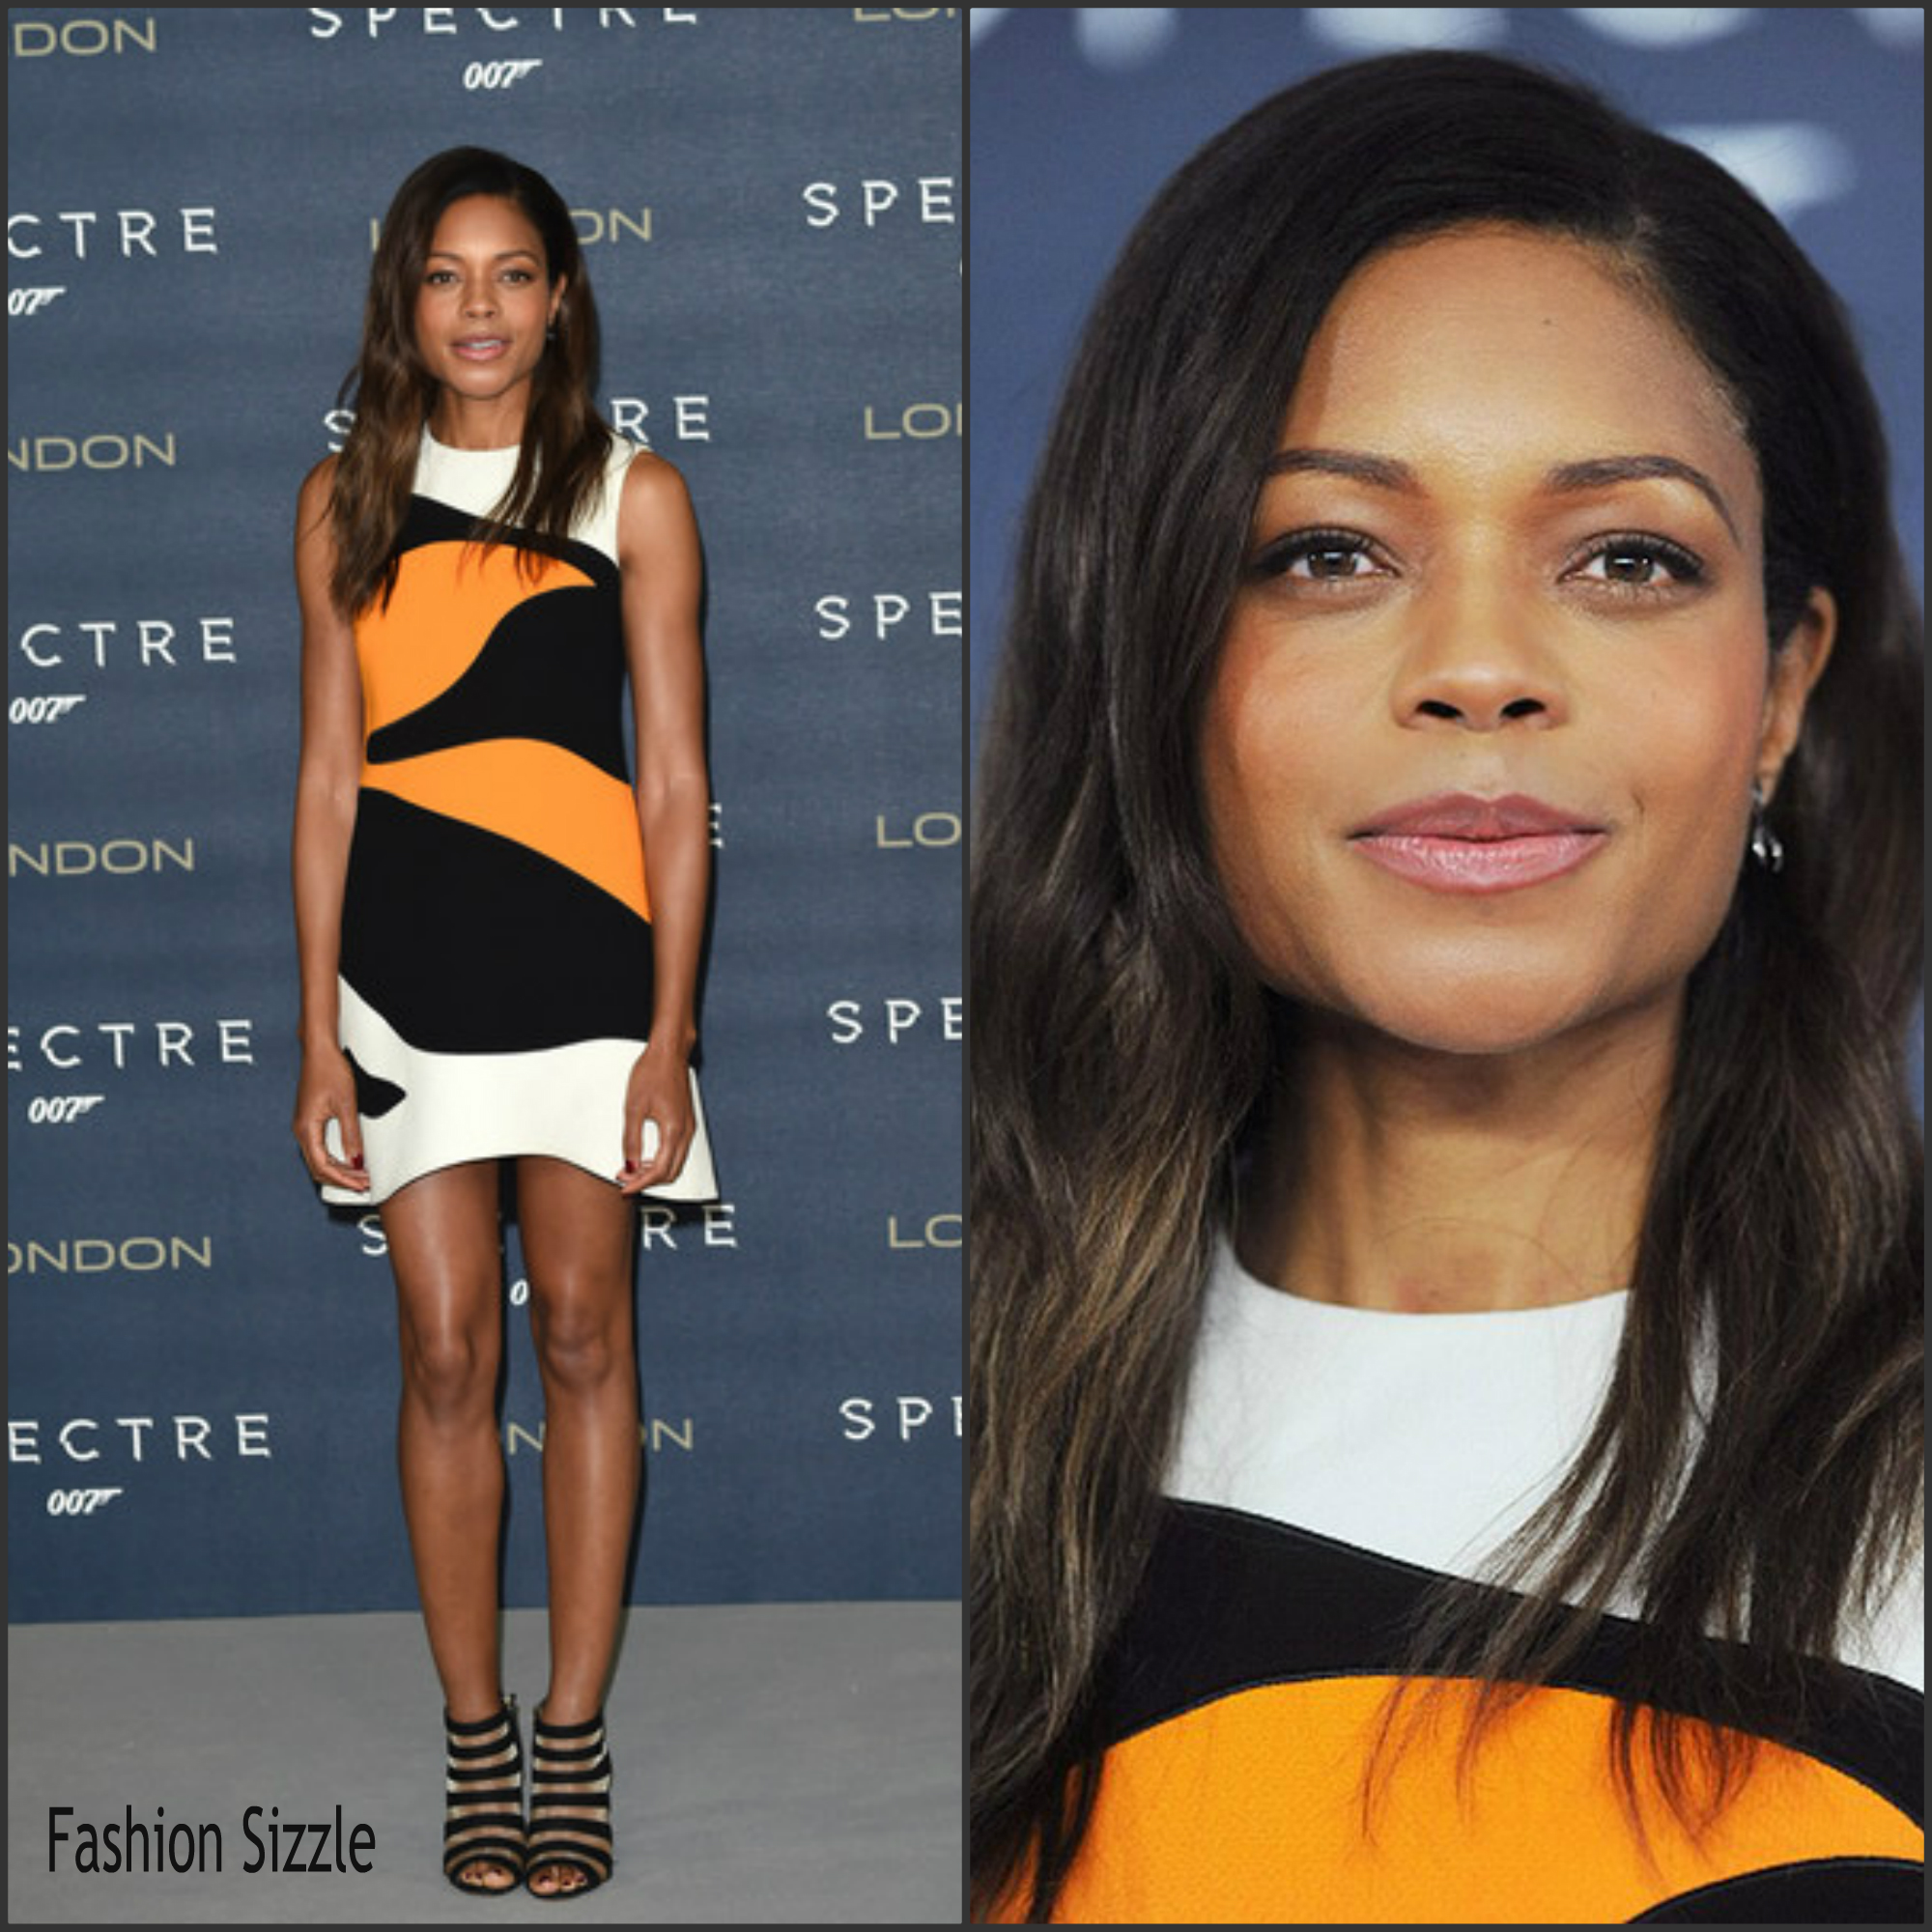 naomie-harris-in-christian-dior-spectre-london-photocall